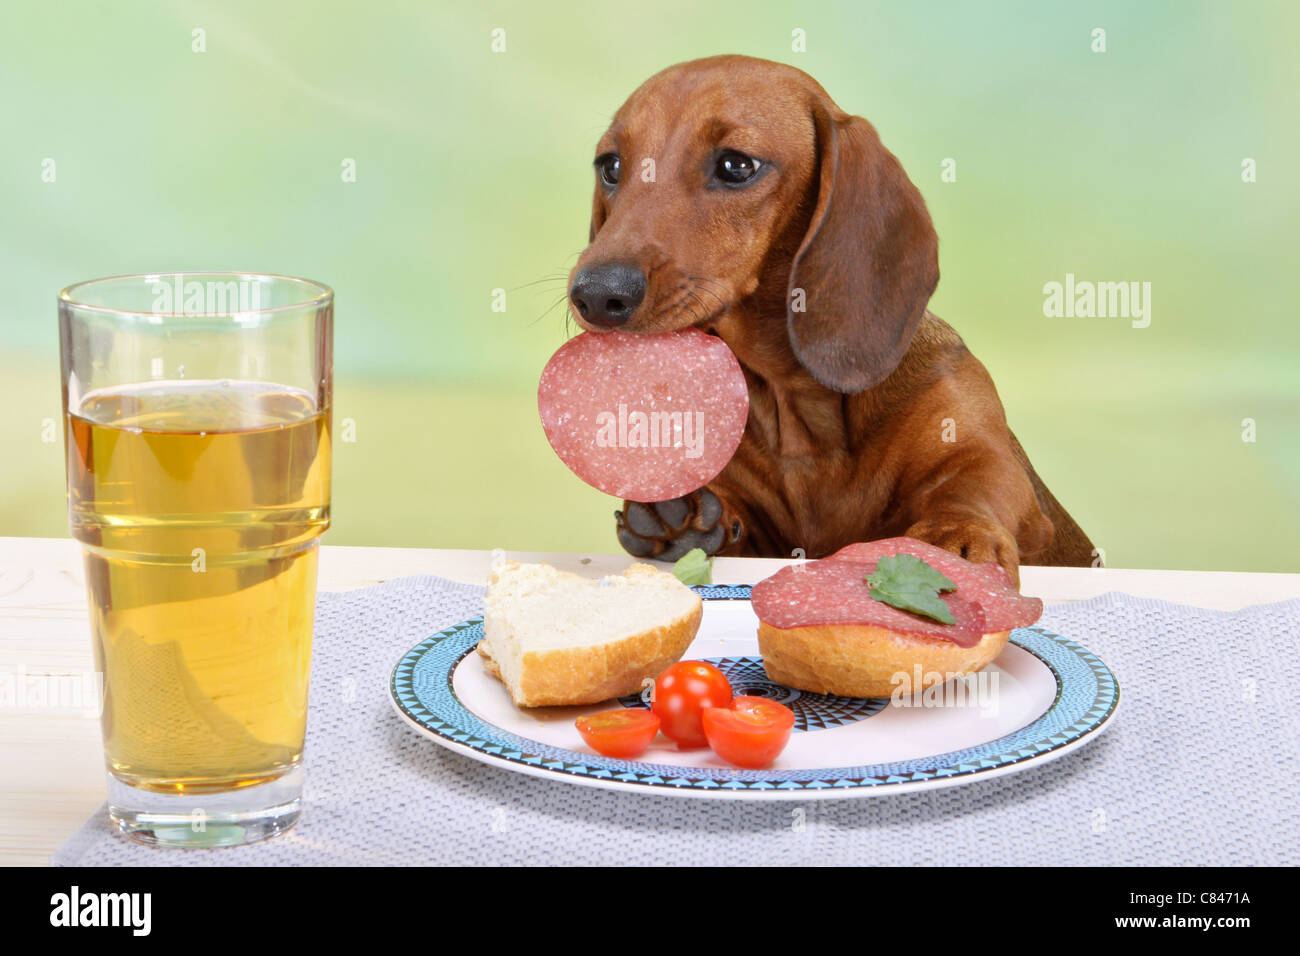 What Table Food Is Bad For Dogs